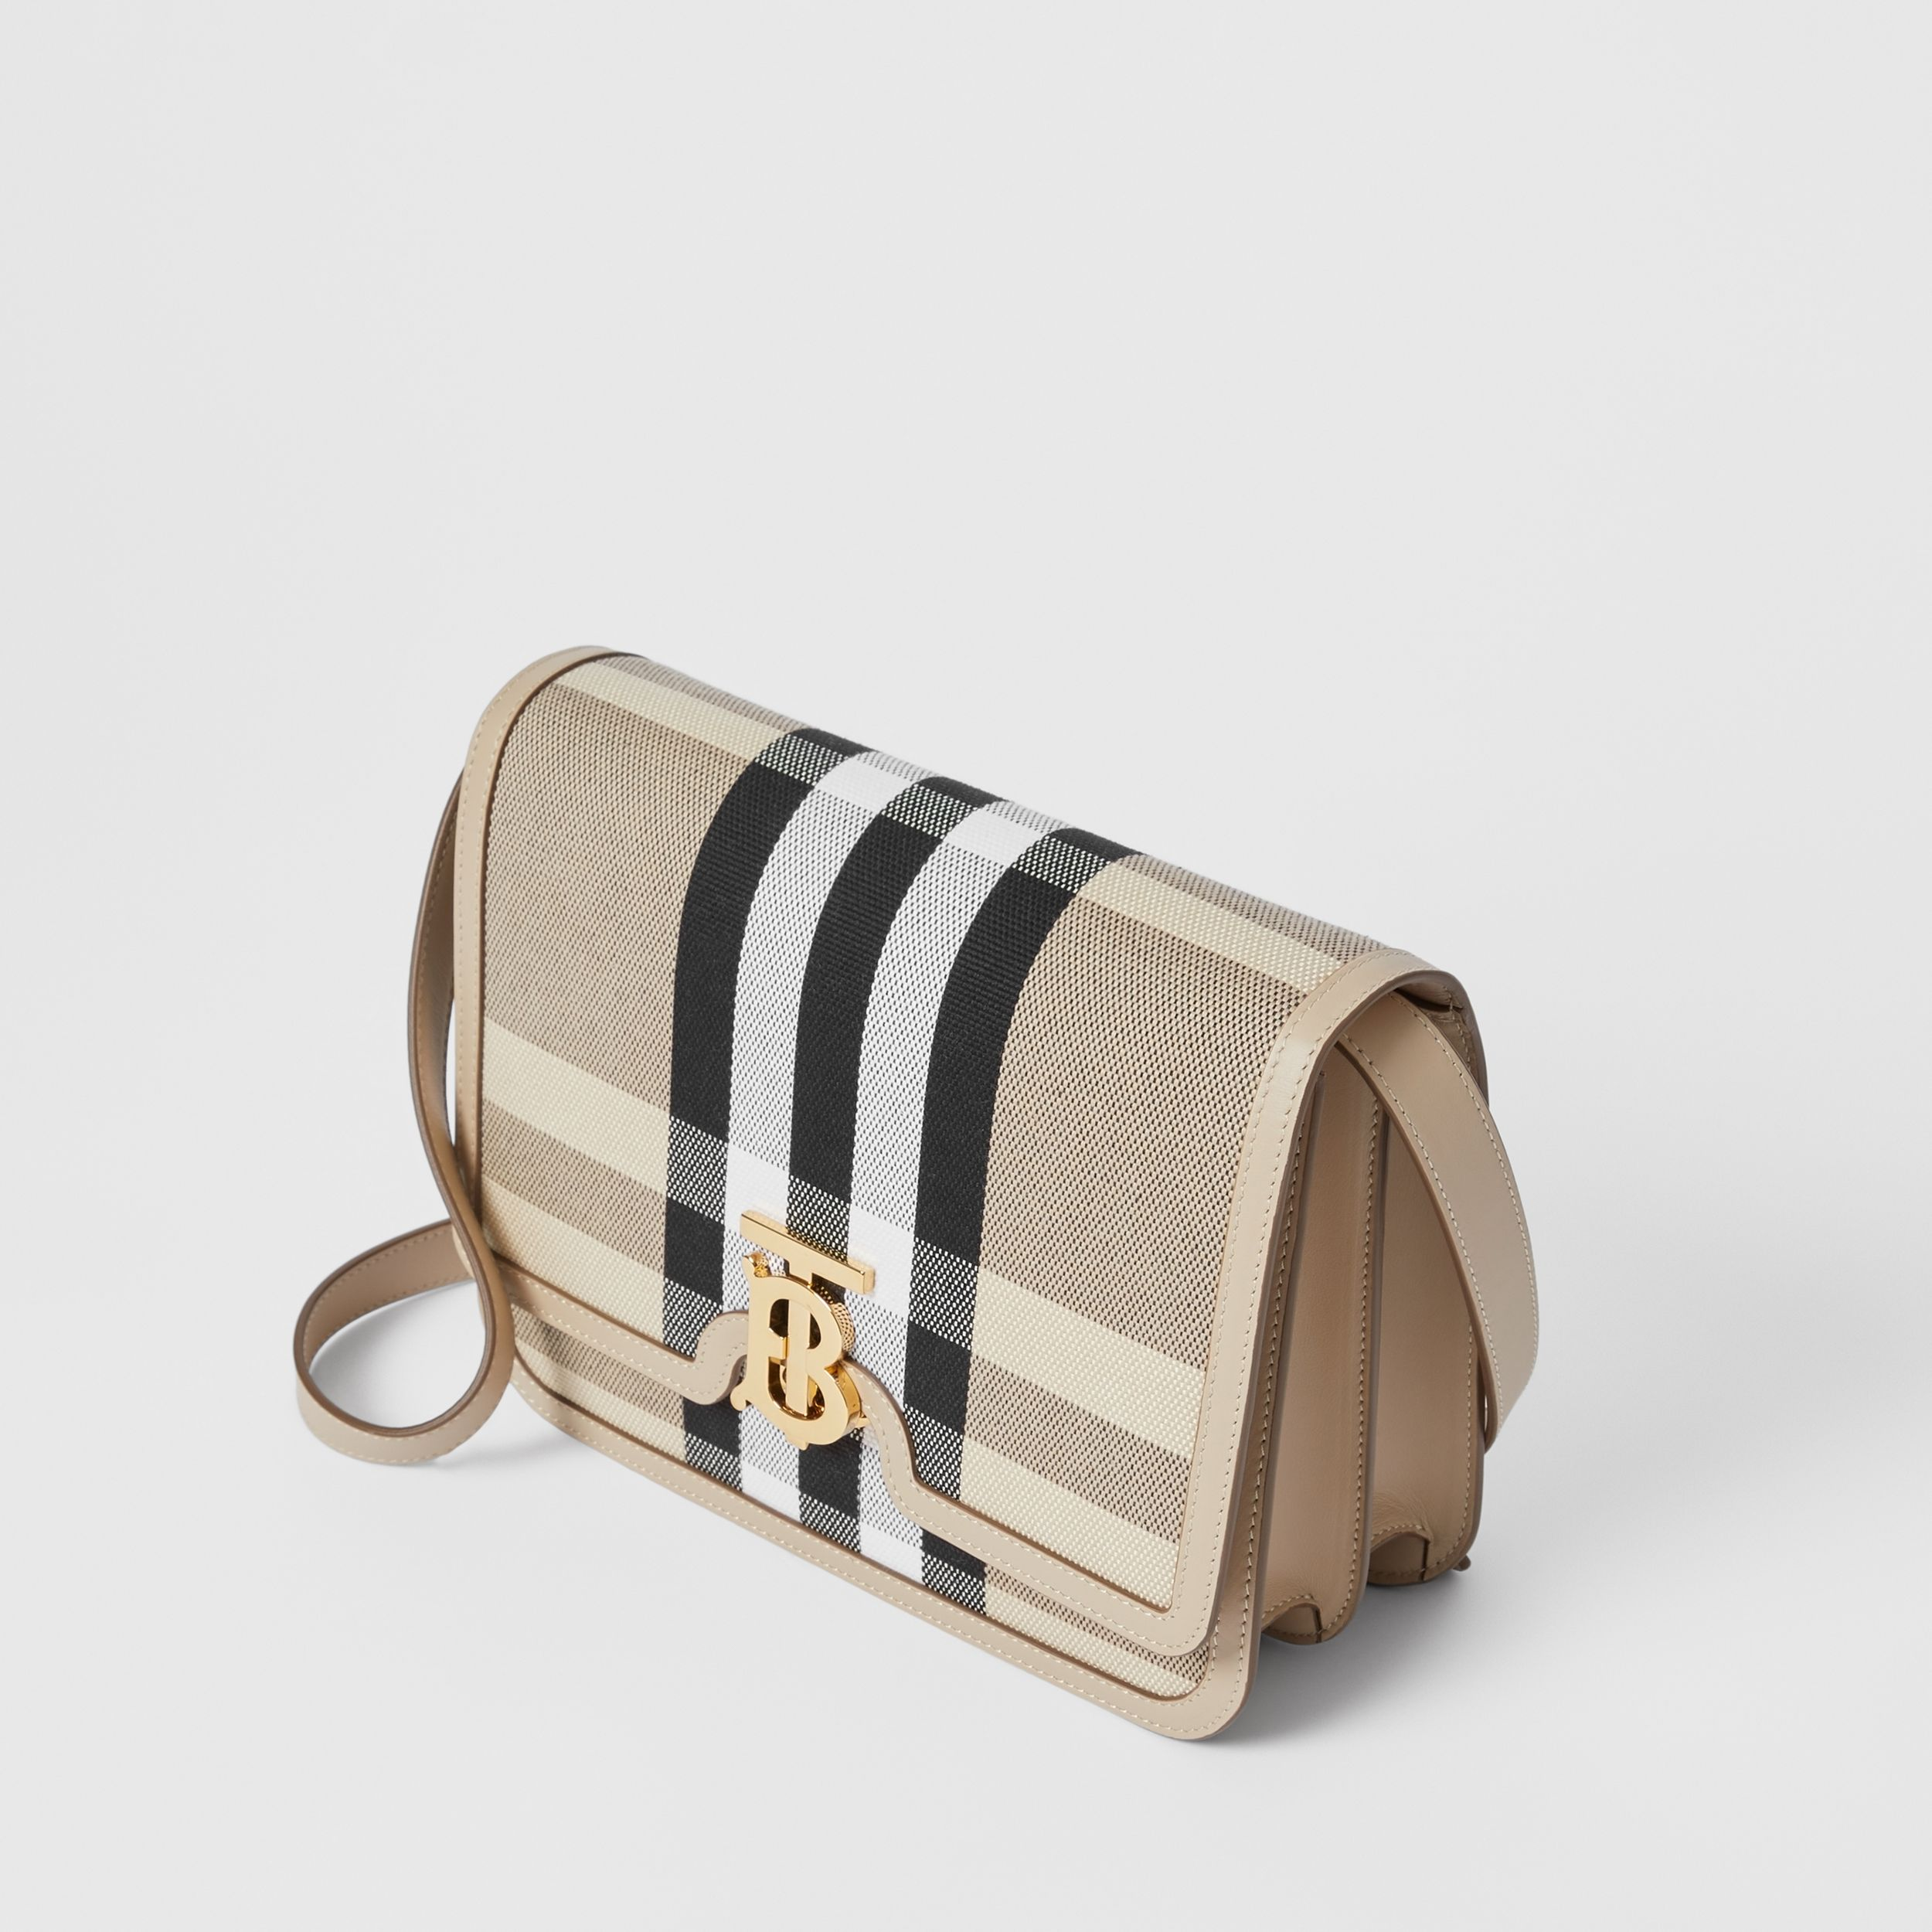 Medium Check Canvas and Leather TB Bag in Dusty Sand/soft Fawn - Women | Burberry - 4